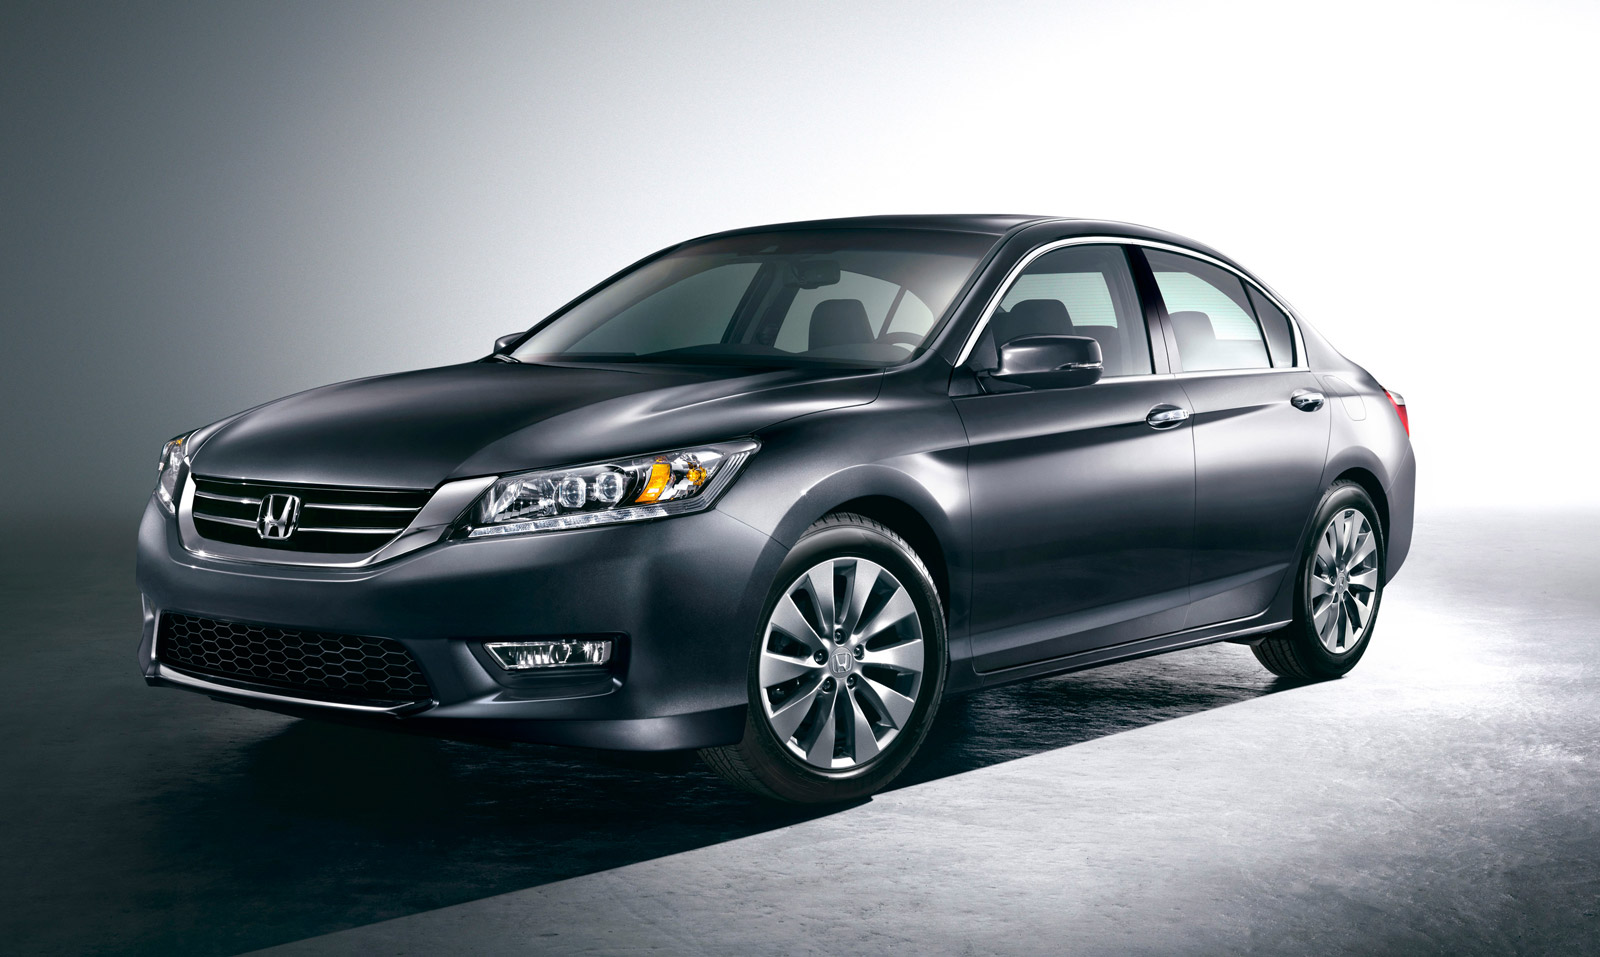 2013 Honda Accord At 34 MPG Would You Rather Have A V6